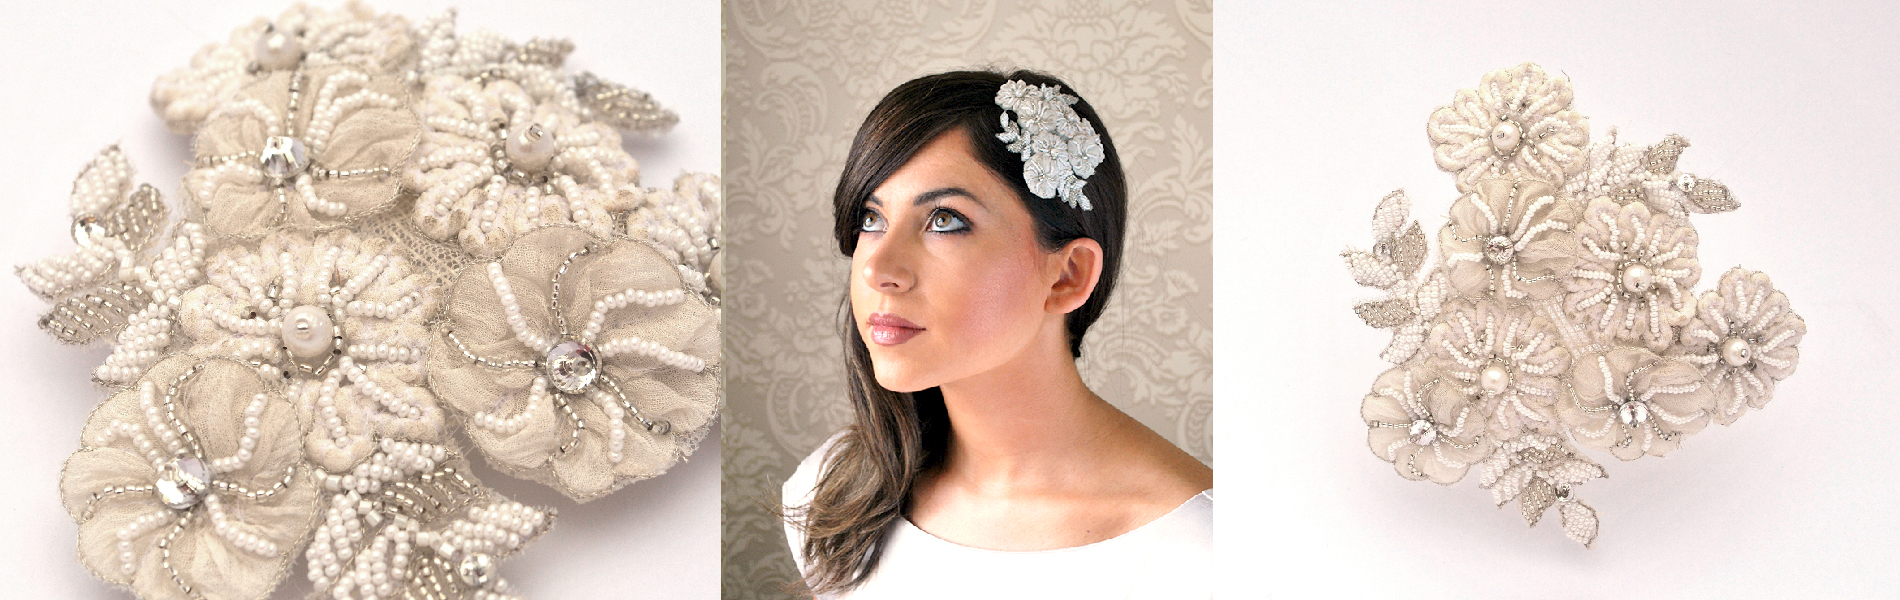 Be Bespoke Bridal Headpieces Ireland - Buy bridal headpieces online from the styled collections or have a custom piece of headwear designed